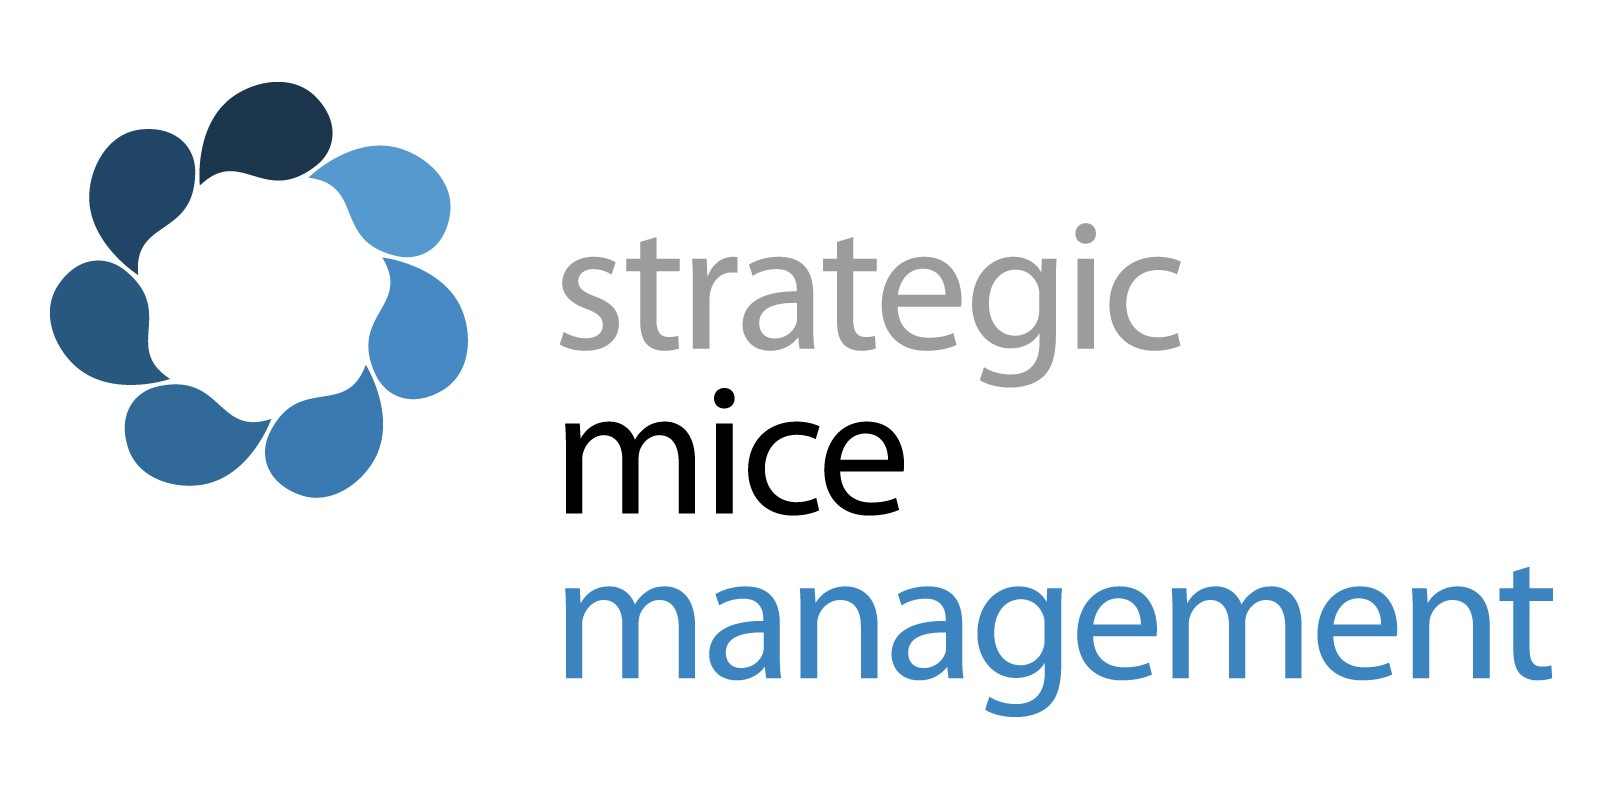 strategic mice management